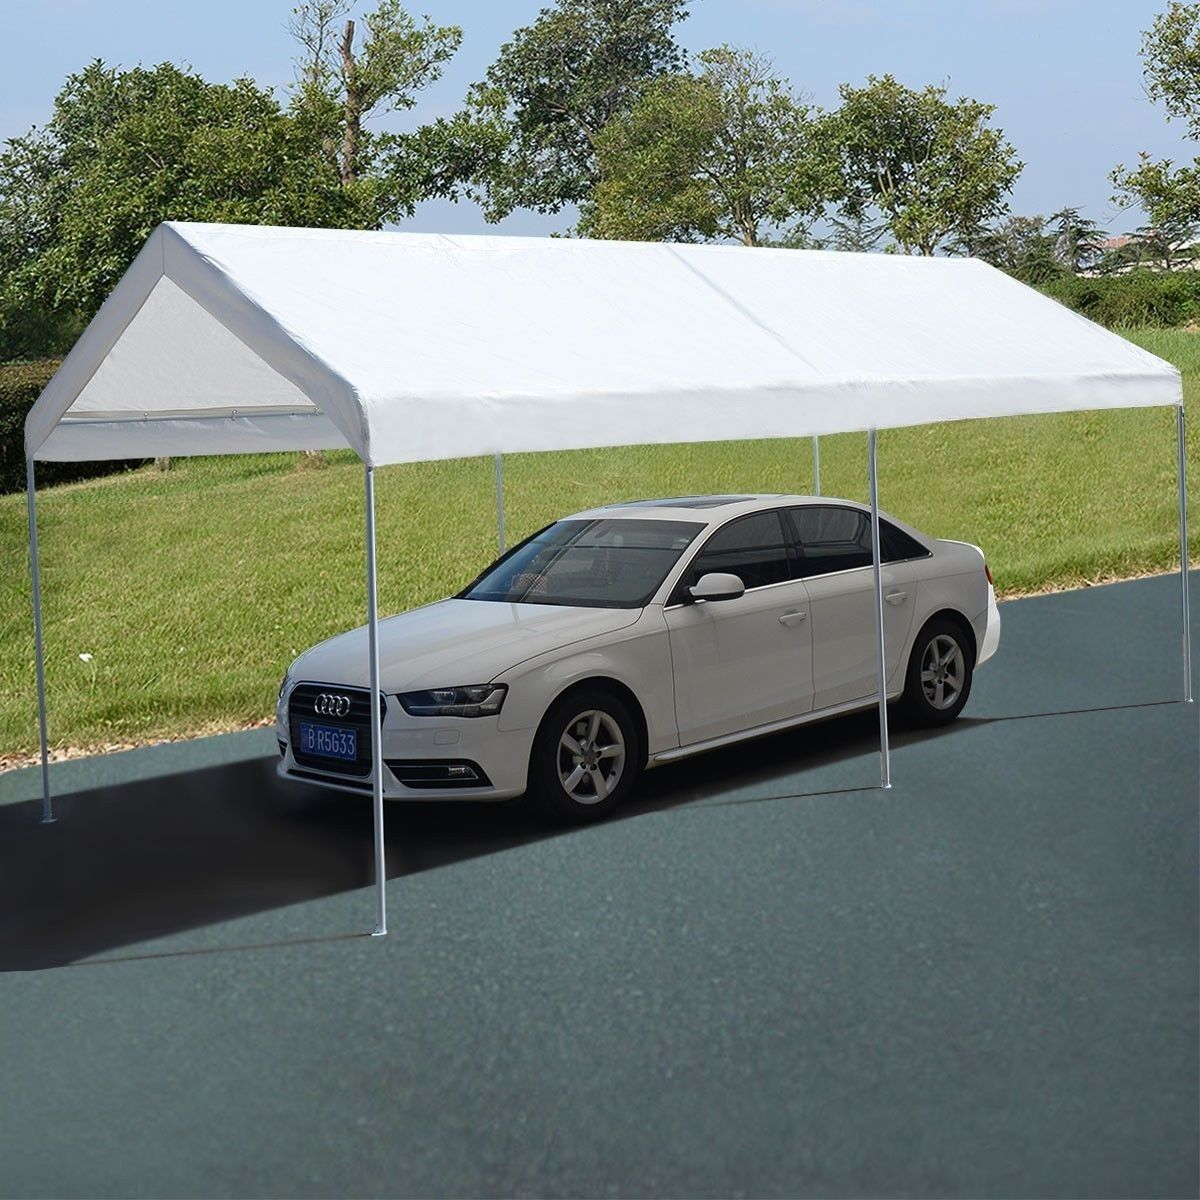 10 x 20 Steel Frame Portable Car Canopy Shelter Canopy